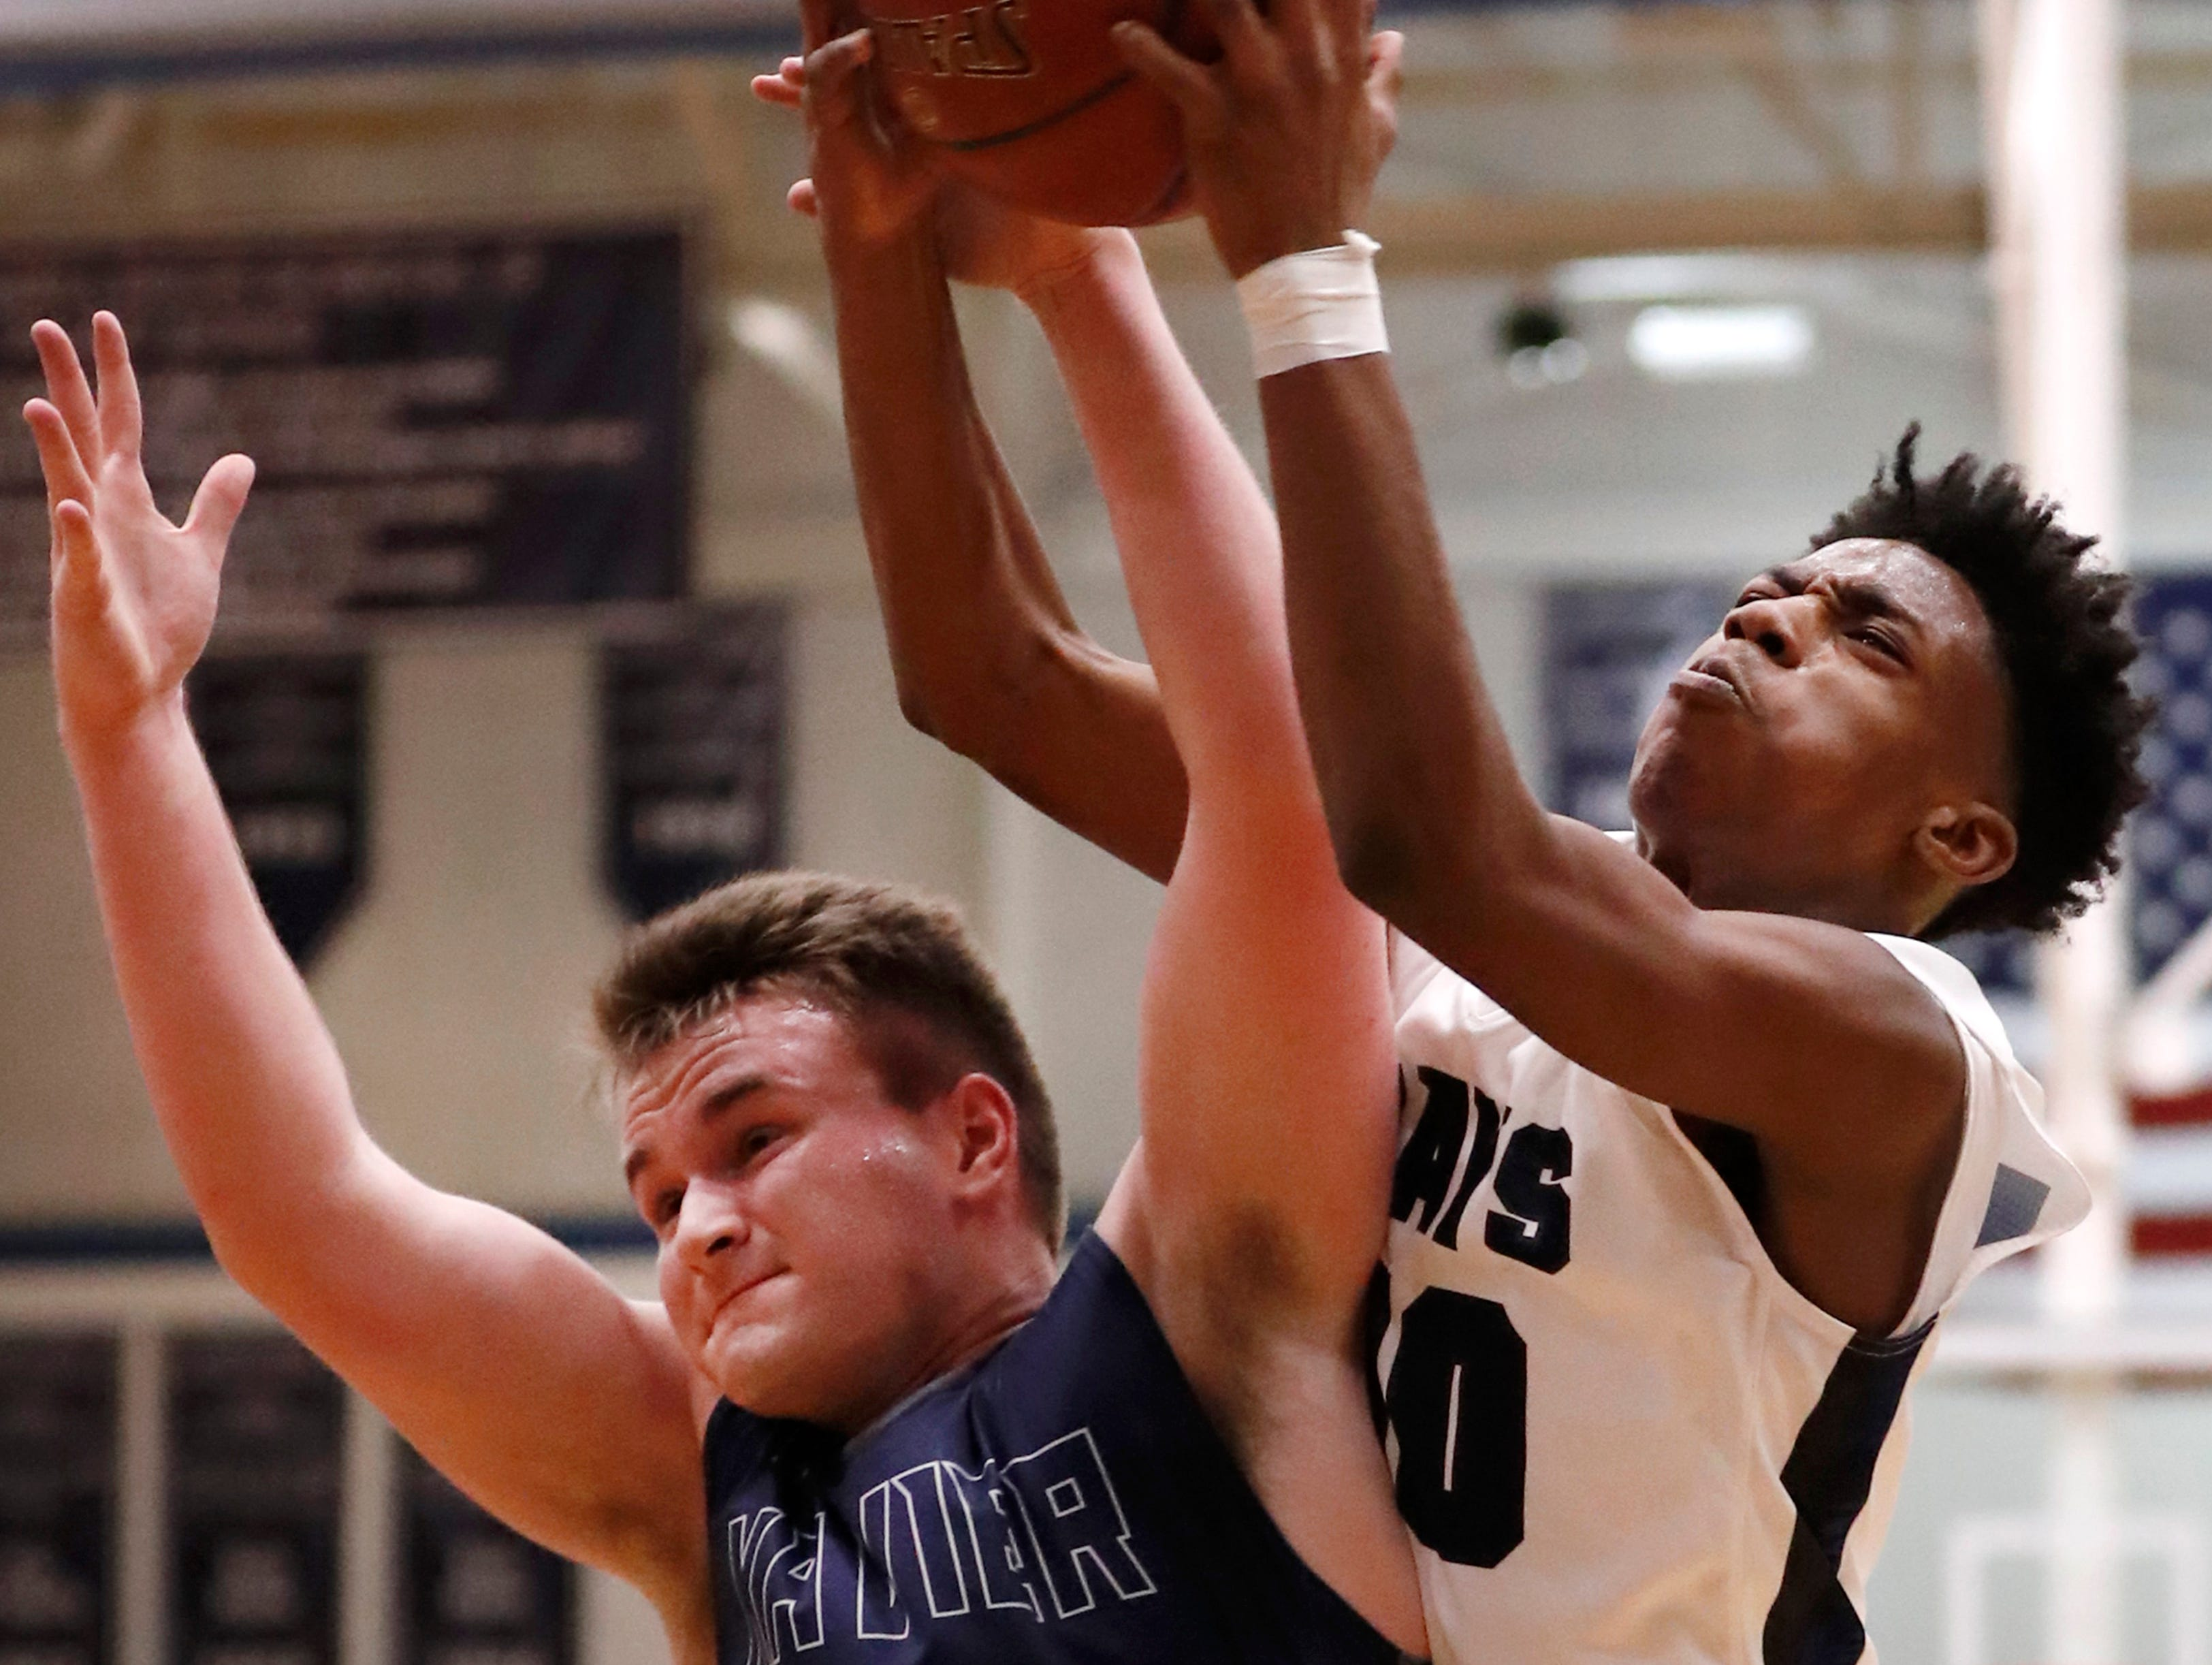 Menasha High SchoolÕs Jalen Womack tries to get a rebound away from Xavier High SchoolÕs Aaron Collins Thursday, Jan. 17, 2019, in Menasha, Wis. Xavier High School defeated Menasha High School 71-61.